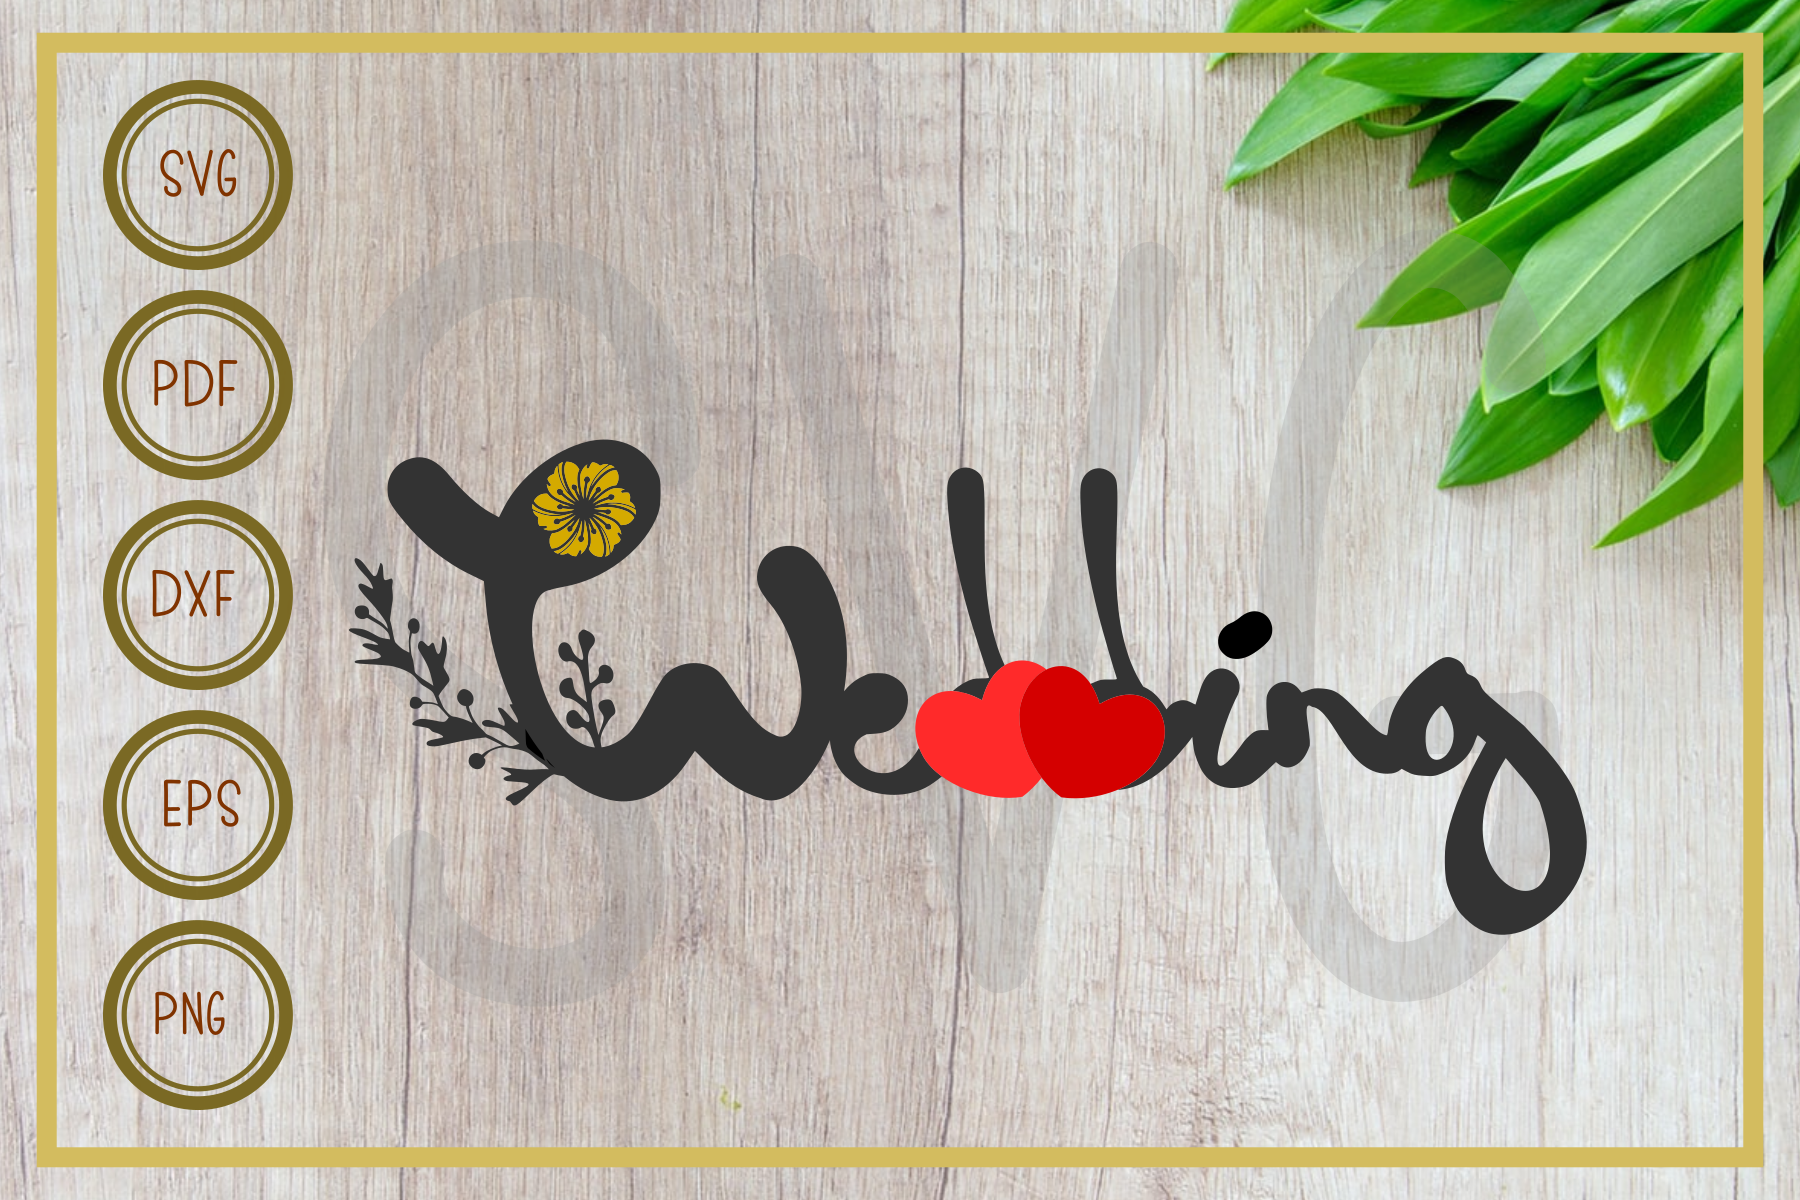 Download Free Wedding Letter Wedding Silhouette Graphic By Rizuki Store for Cricut Explore, Silhouette and other cutting machines.